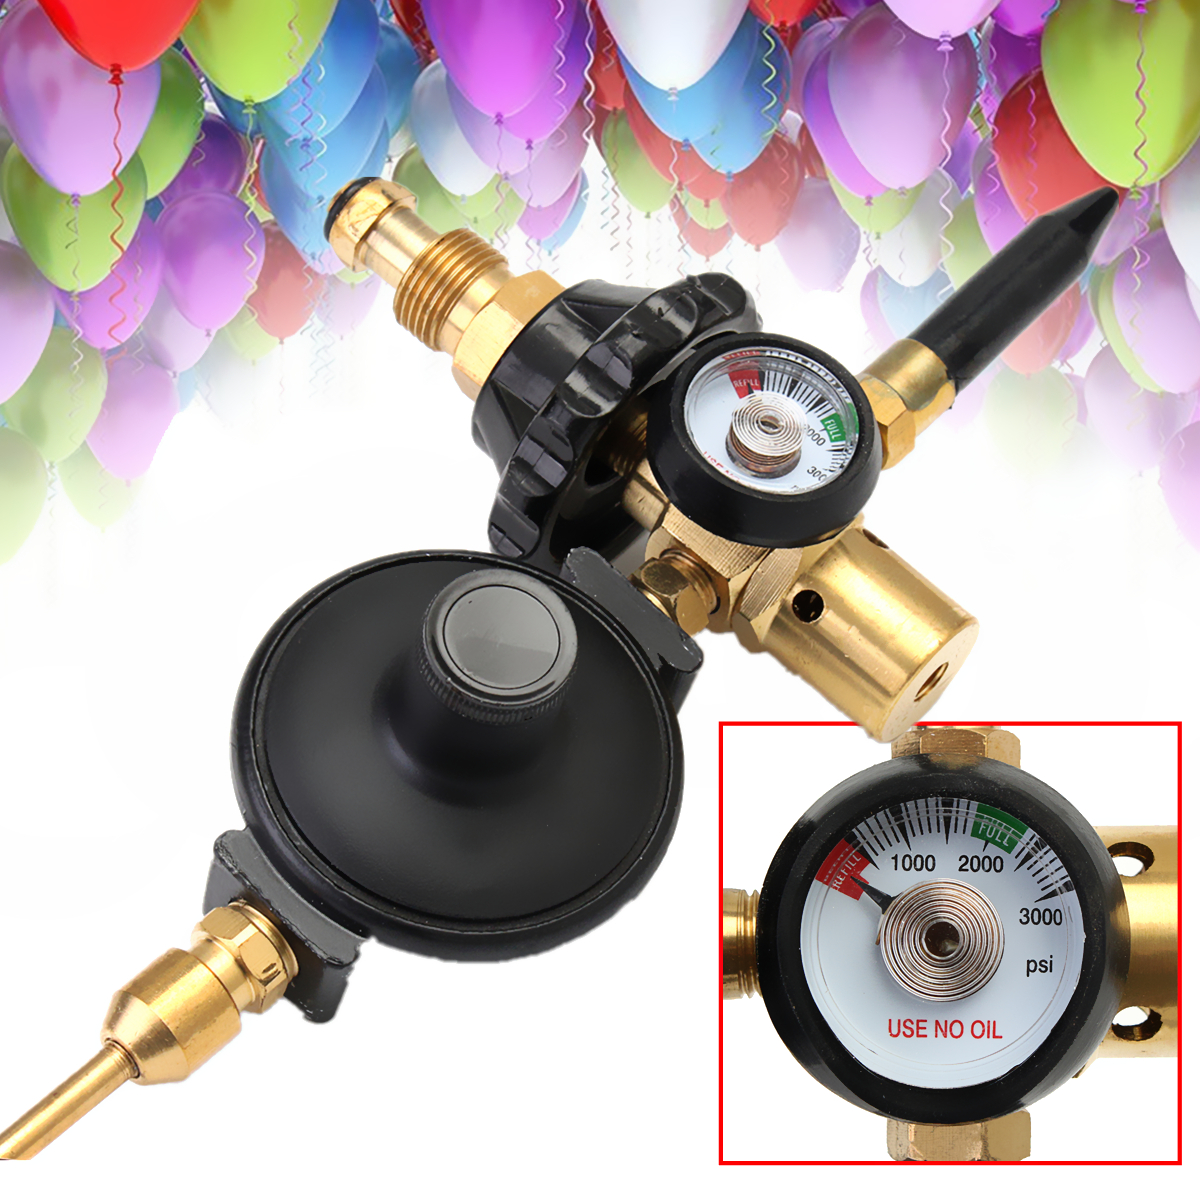 Helium Latex Balloon Air Flow Inflator Regulator Meter Gauge For G5/8 Tank Valve nf 2650 digital laser distance meter handheld laser rangefinder tape measure distance area volume in level tool lofting function